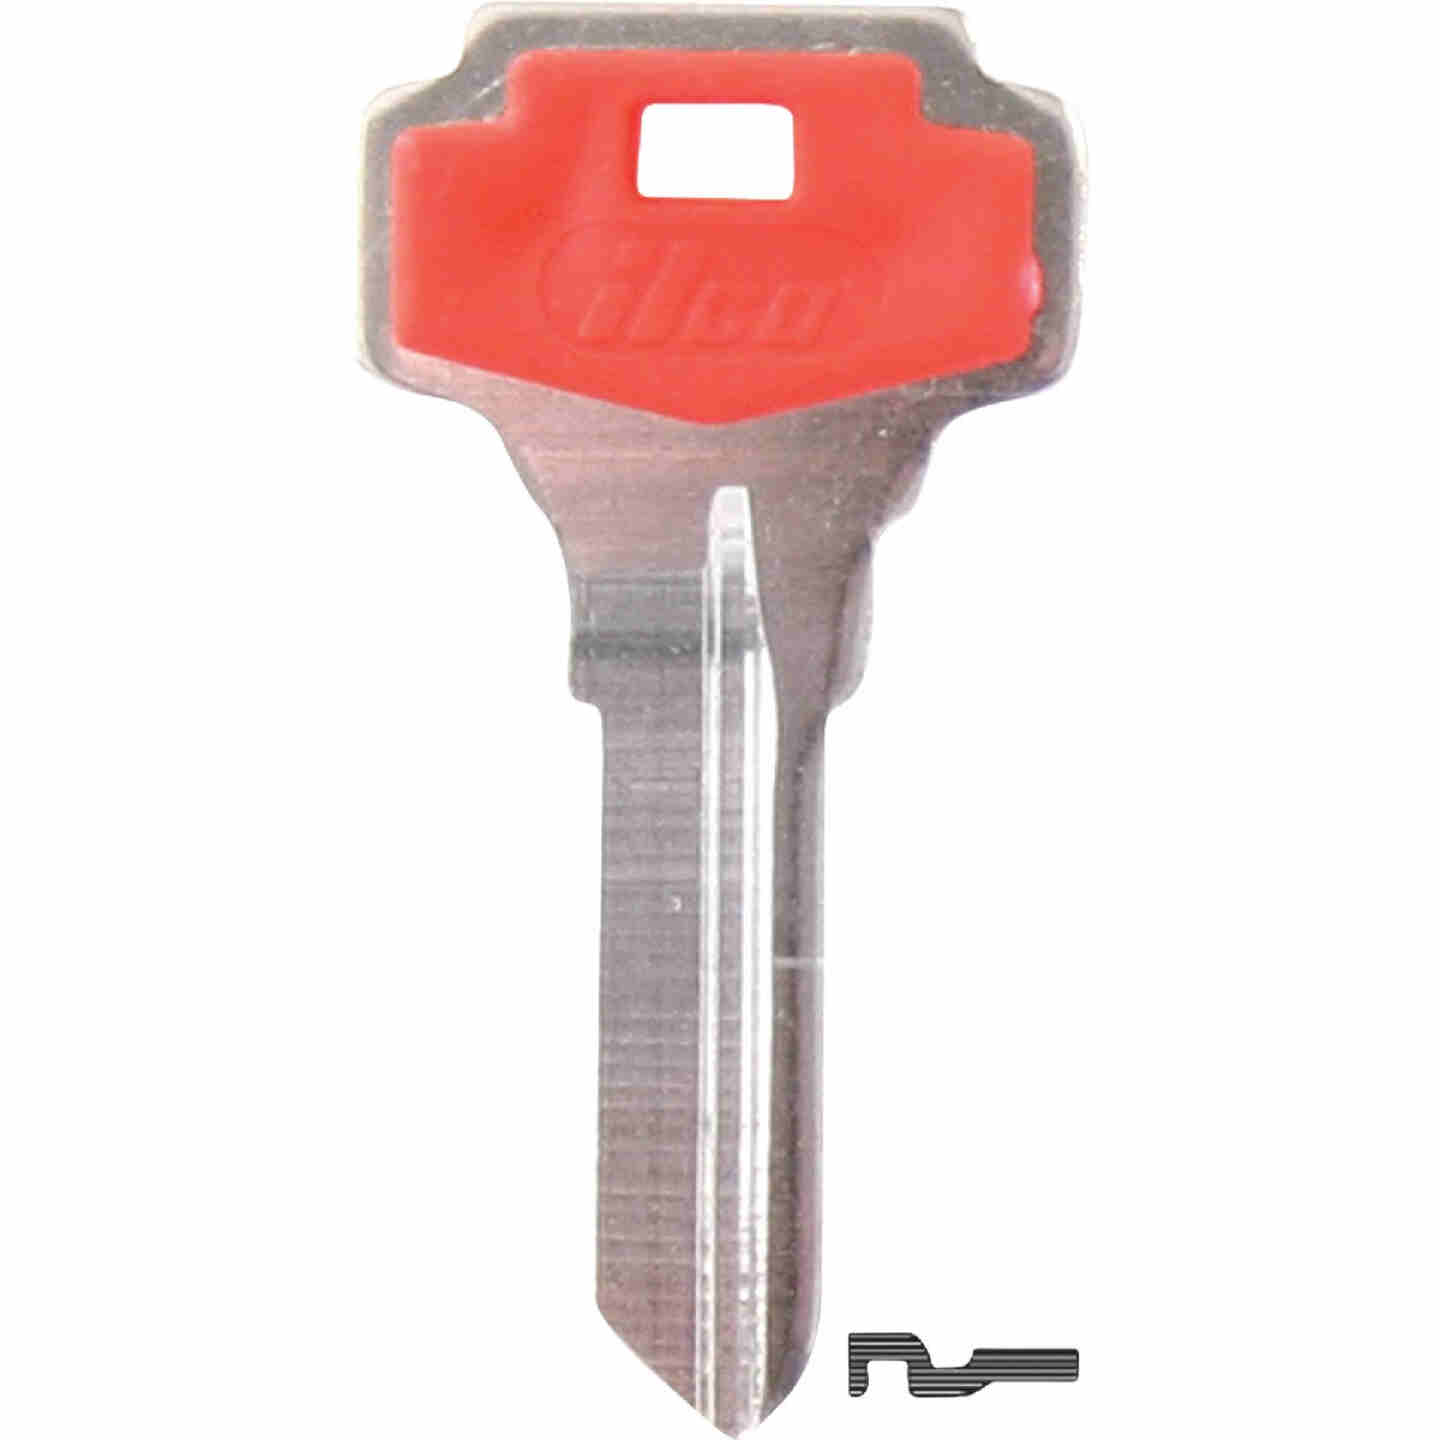 ILCO Dexter Design Decorative House Key, DE6P (5-Pack) Image 1